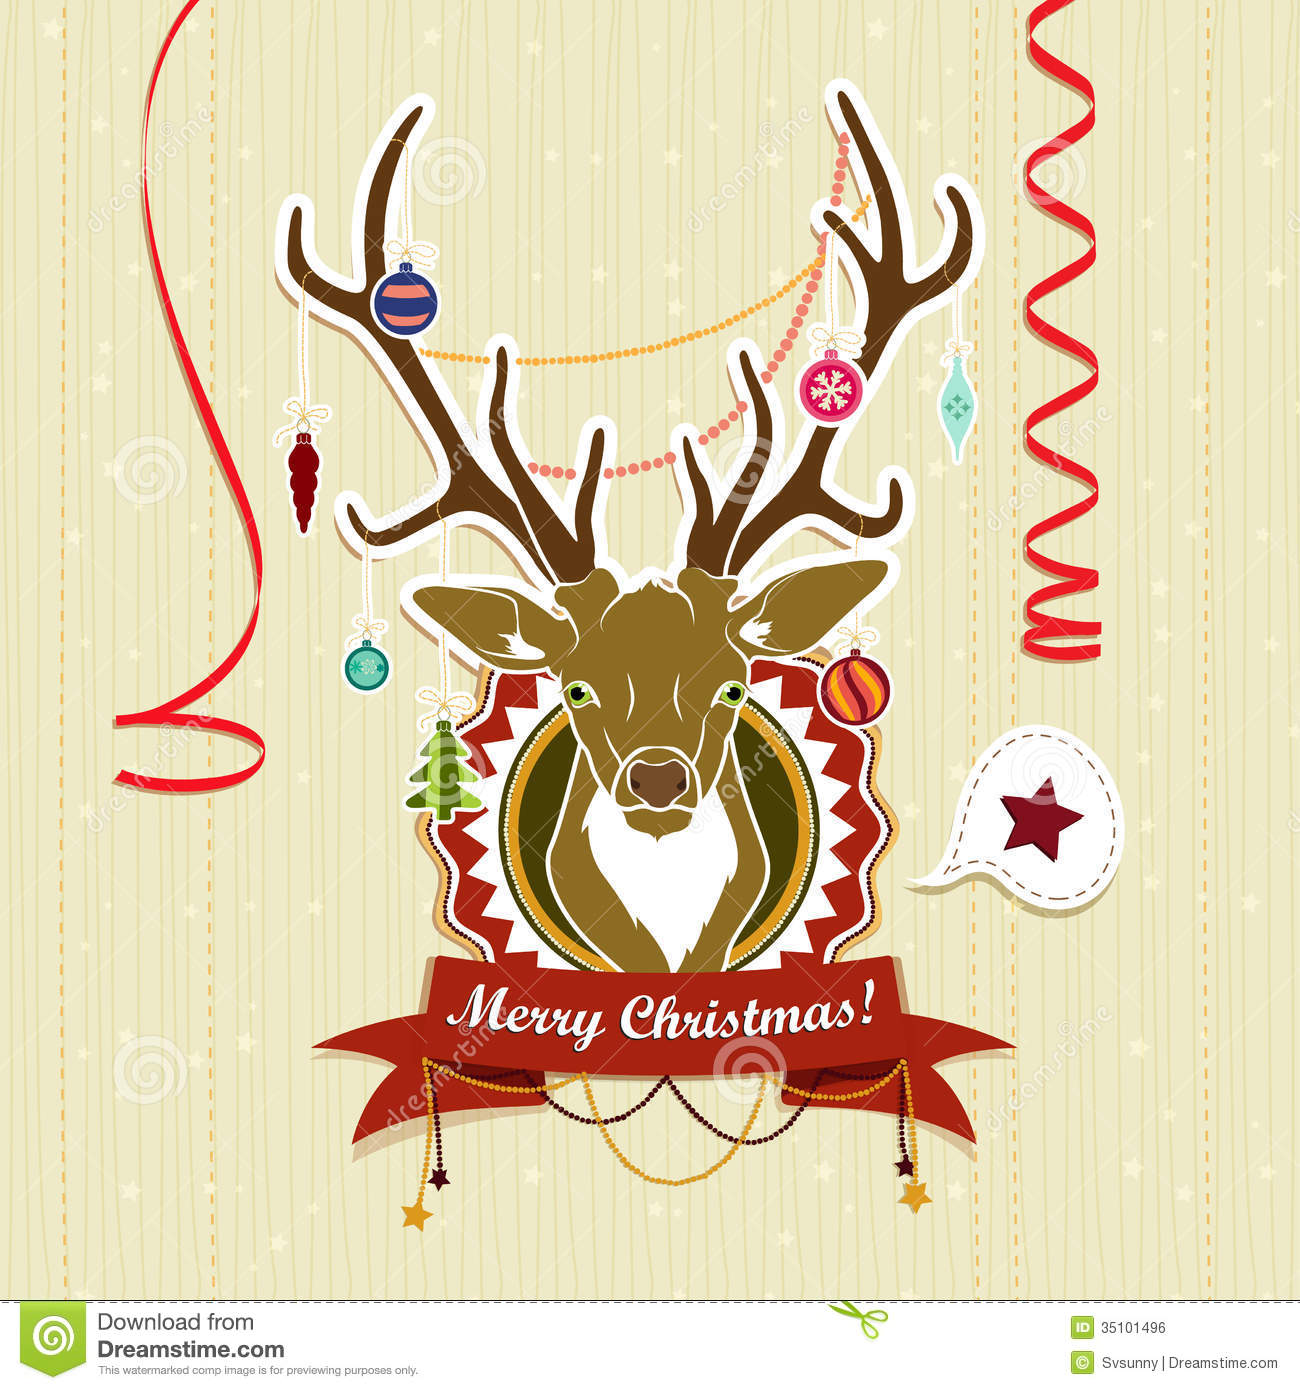 Vintage Christmas Card With Deer Royalty Free Stock Image - Image ...